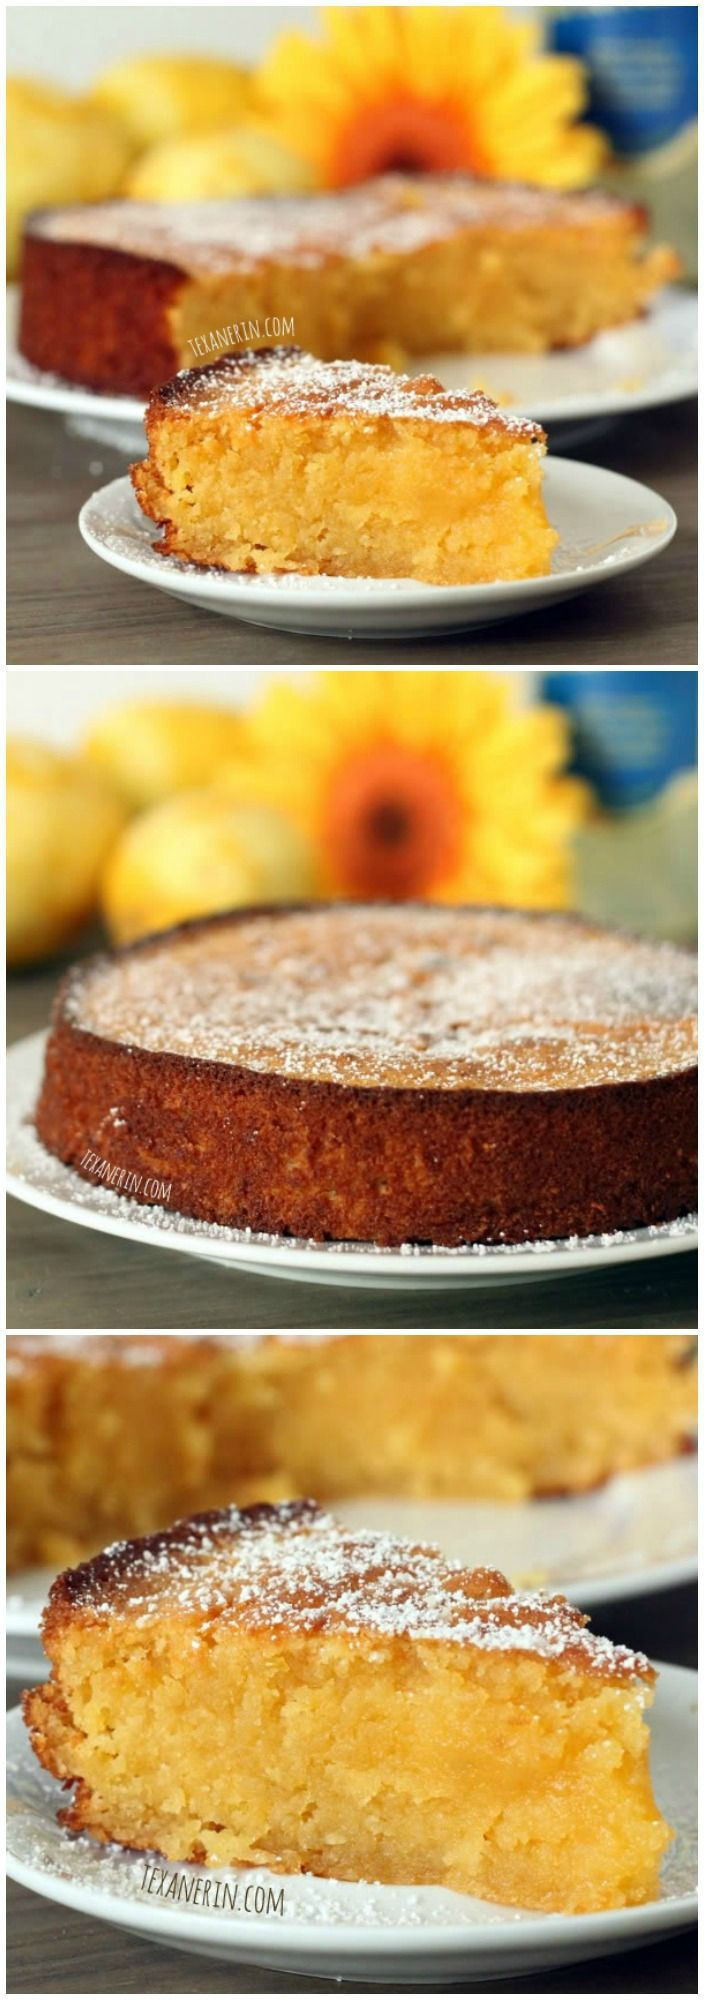 This grain-free Italian lemon cake (also known as torta caprese bianca) is made with almond flour and is full of lemon flavor! #glutenfree #grainfree OF COURSE you'll still need to substitute an alternative sugar, but you know that!!! ;)